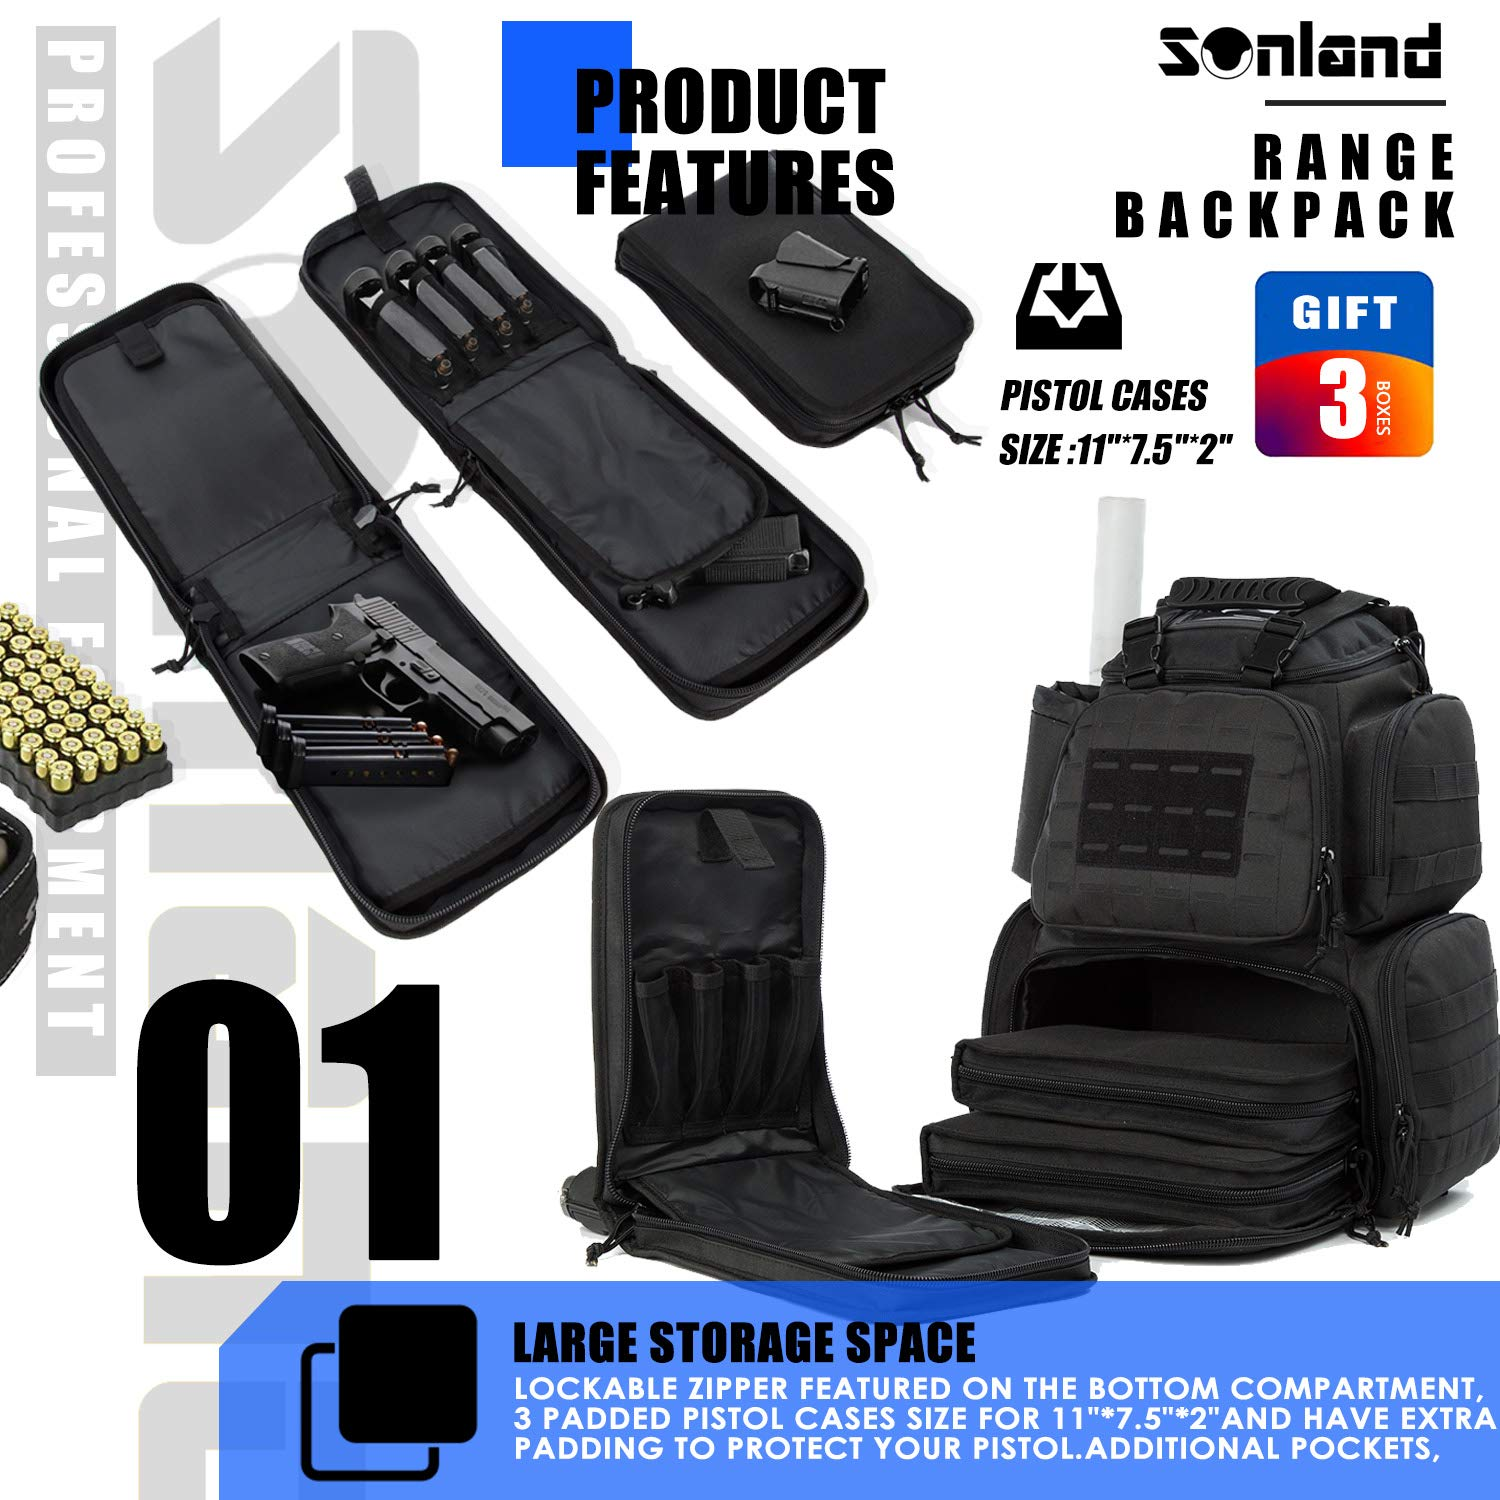 SUNLAND Range Bag Backpack,Gun Backpack with 3-Pistol Case and Protective Rain Cover,Tactical molle System & Lockable zippers-18'' x 14'' x 8'' (Blk) by SUNLAND (Image #2)